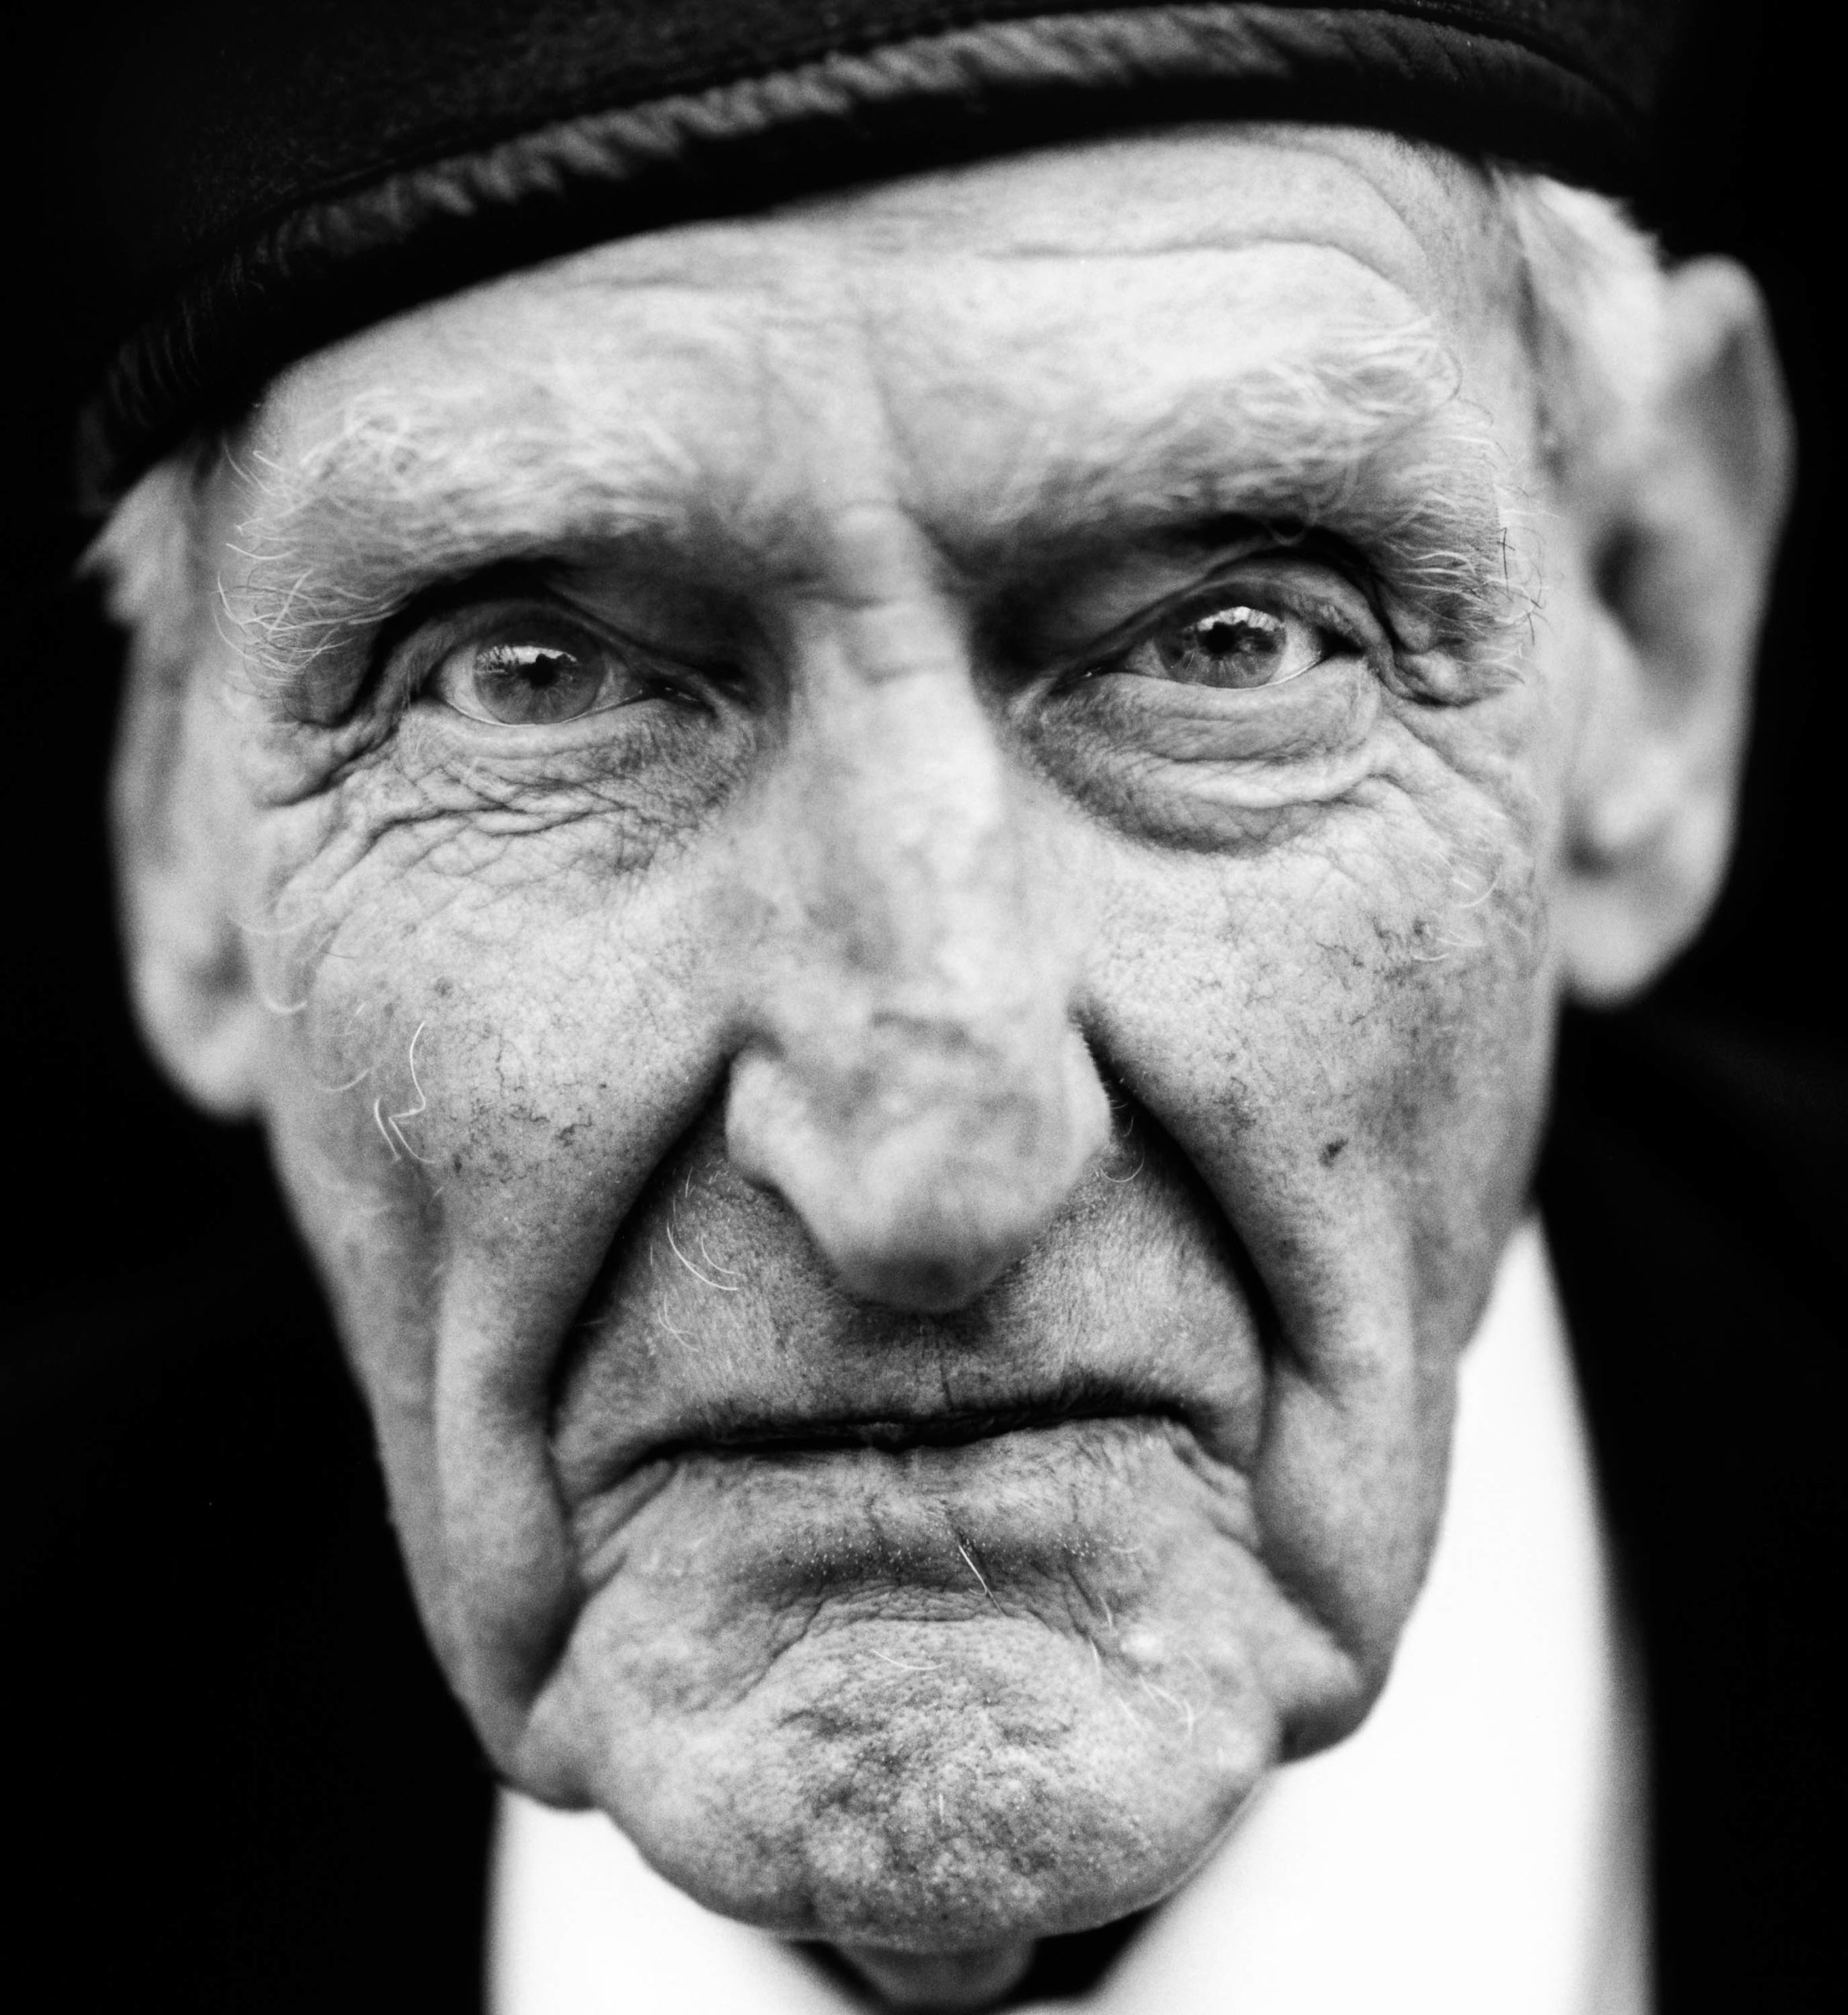 """Victor Wilmot (United Kingdom, 1920). Interview outtake: """"I was transferred to the occupation force in Berlin. (…) You saw people foraging in rubbish bins looking for food. We traded food with them. We would give them, say, chocolate, and they would give us a watch in return."""""""